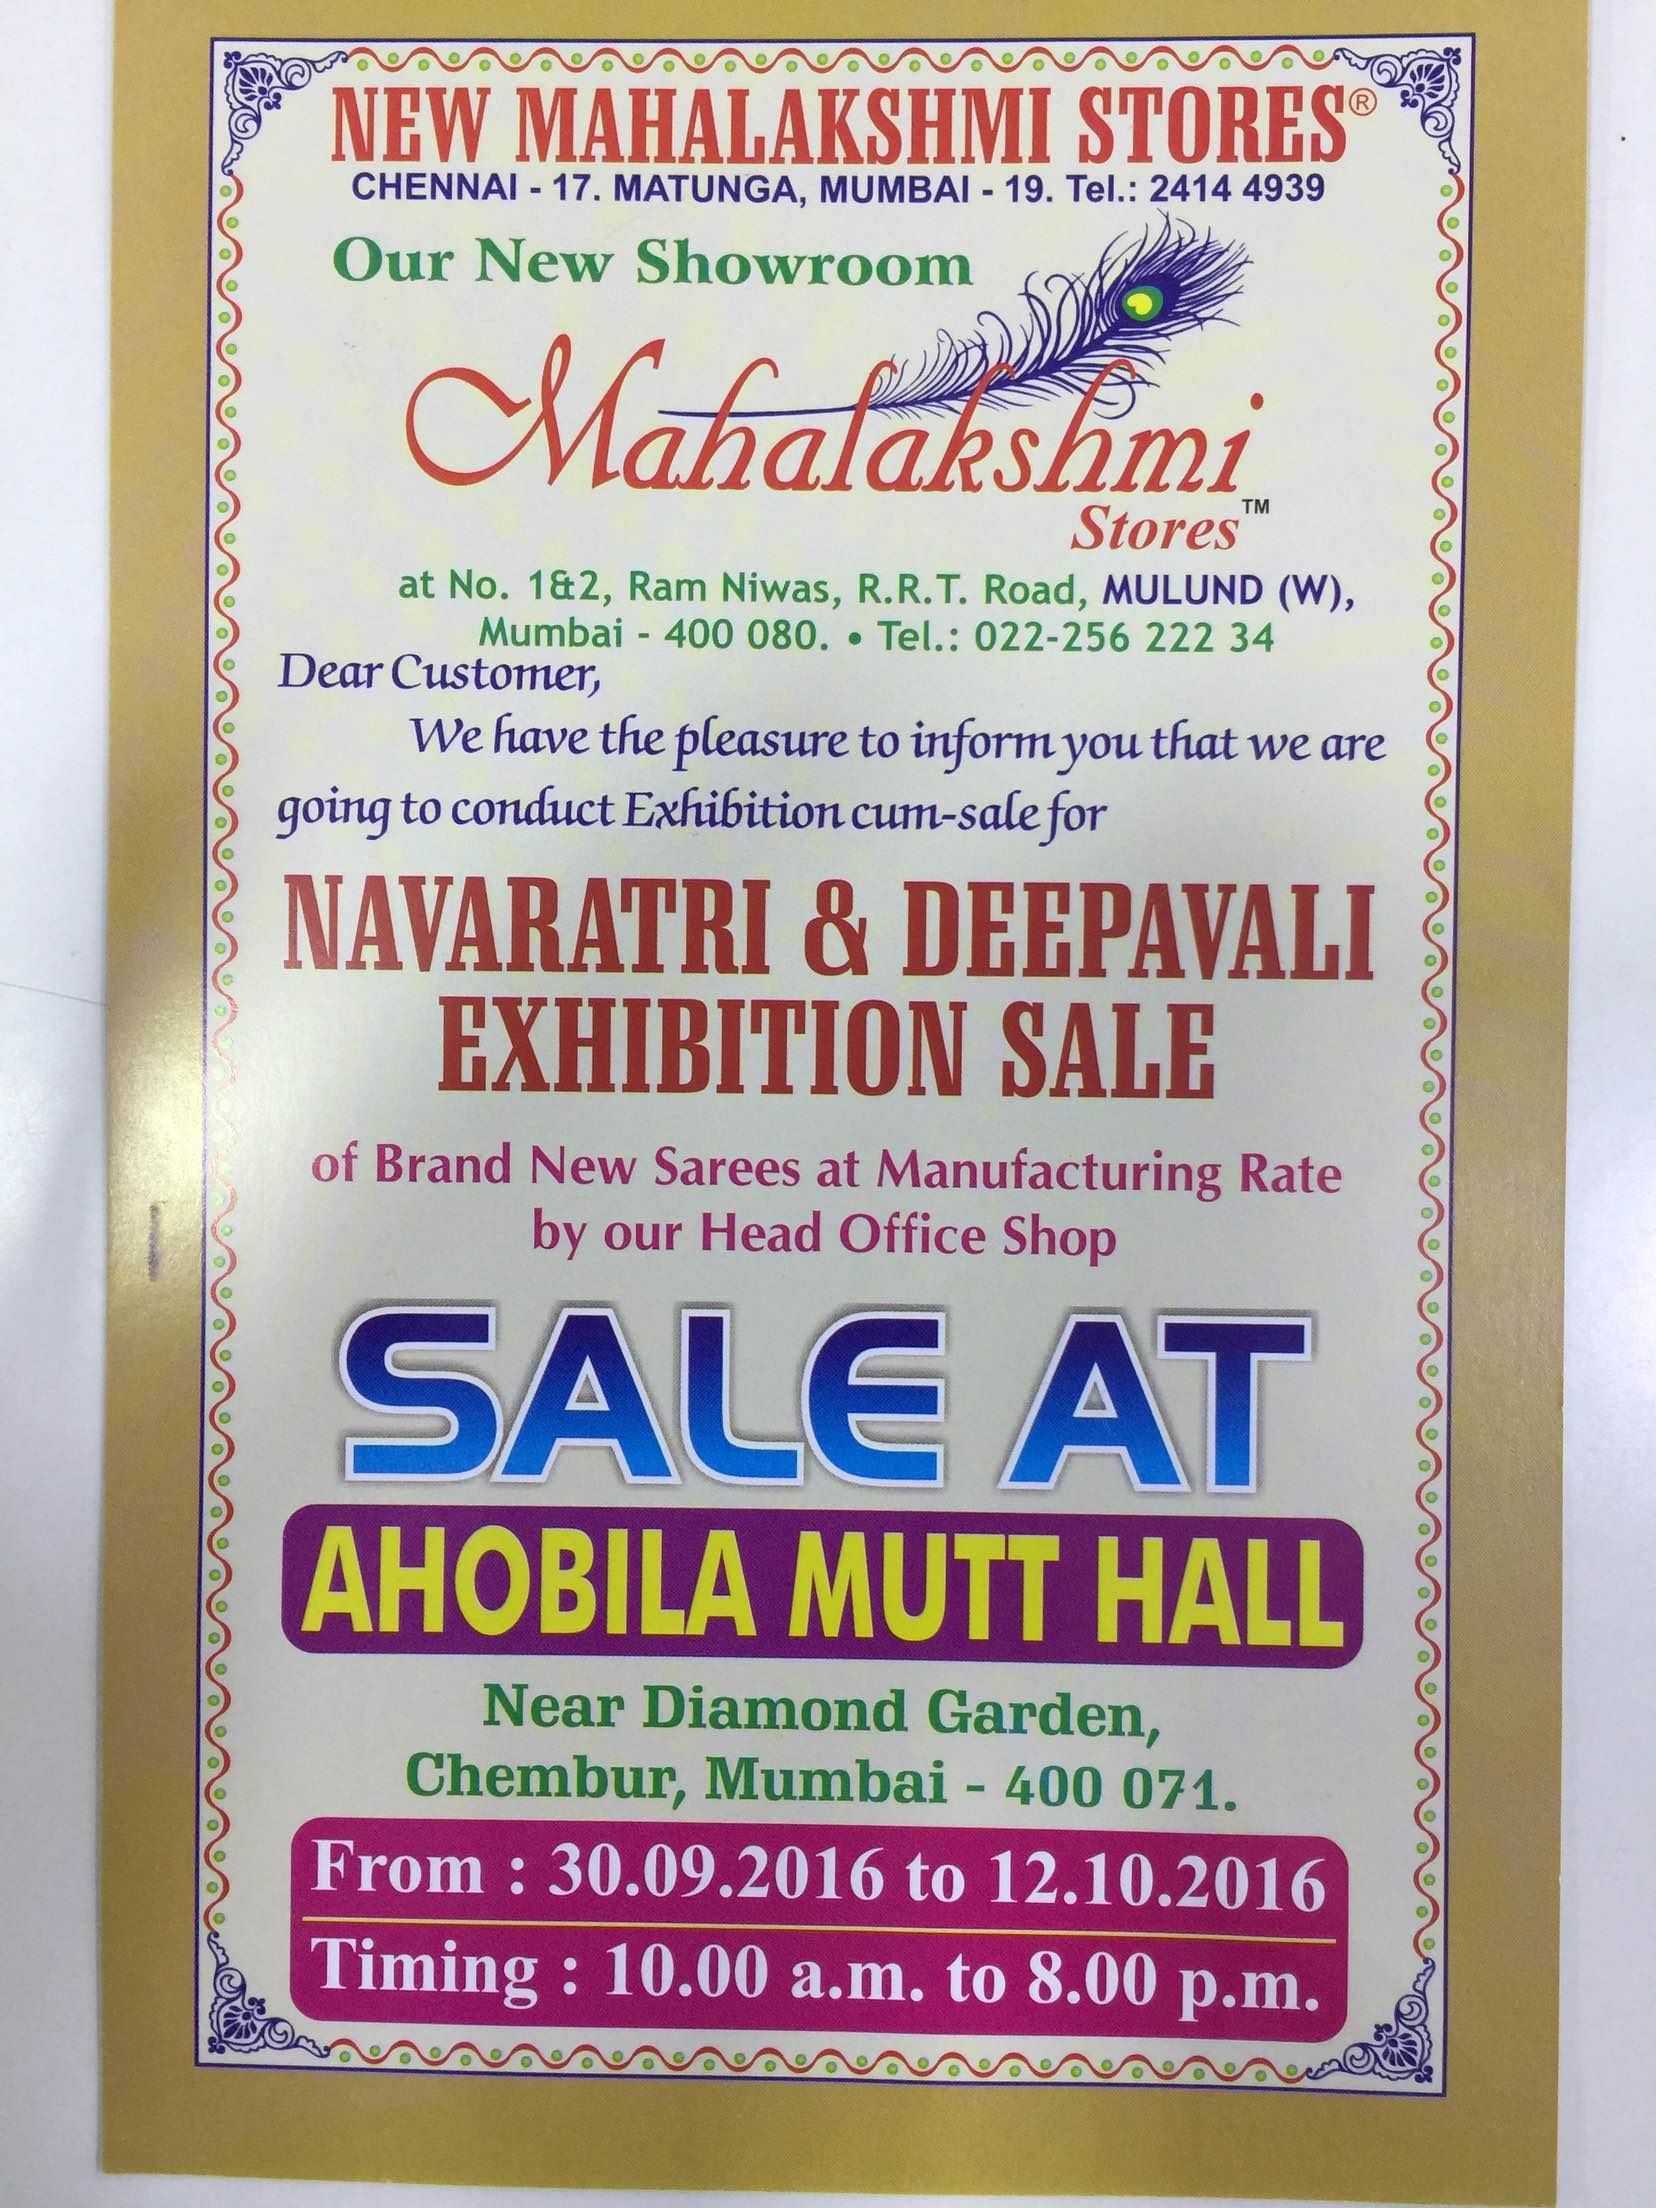 We are back with the sale that you all have been waiting for. We welcome you to our exhibition cum sale where you can get the Best Buy for  Kancheepuram silk sarees, cotton sarees, dress materials and many more ...